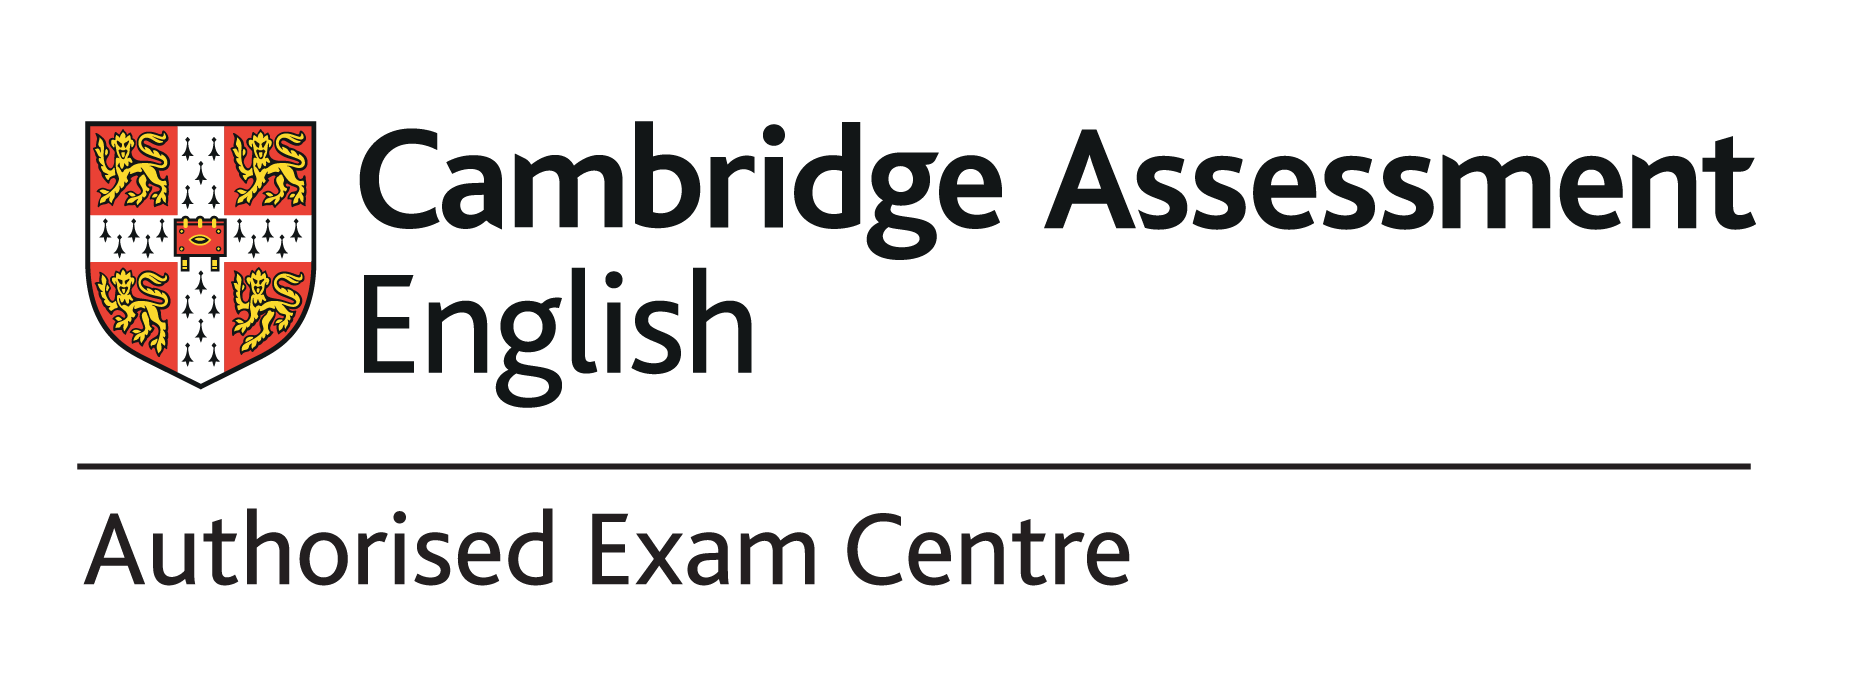 Authorised exam centre logo RGB.png